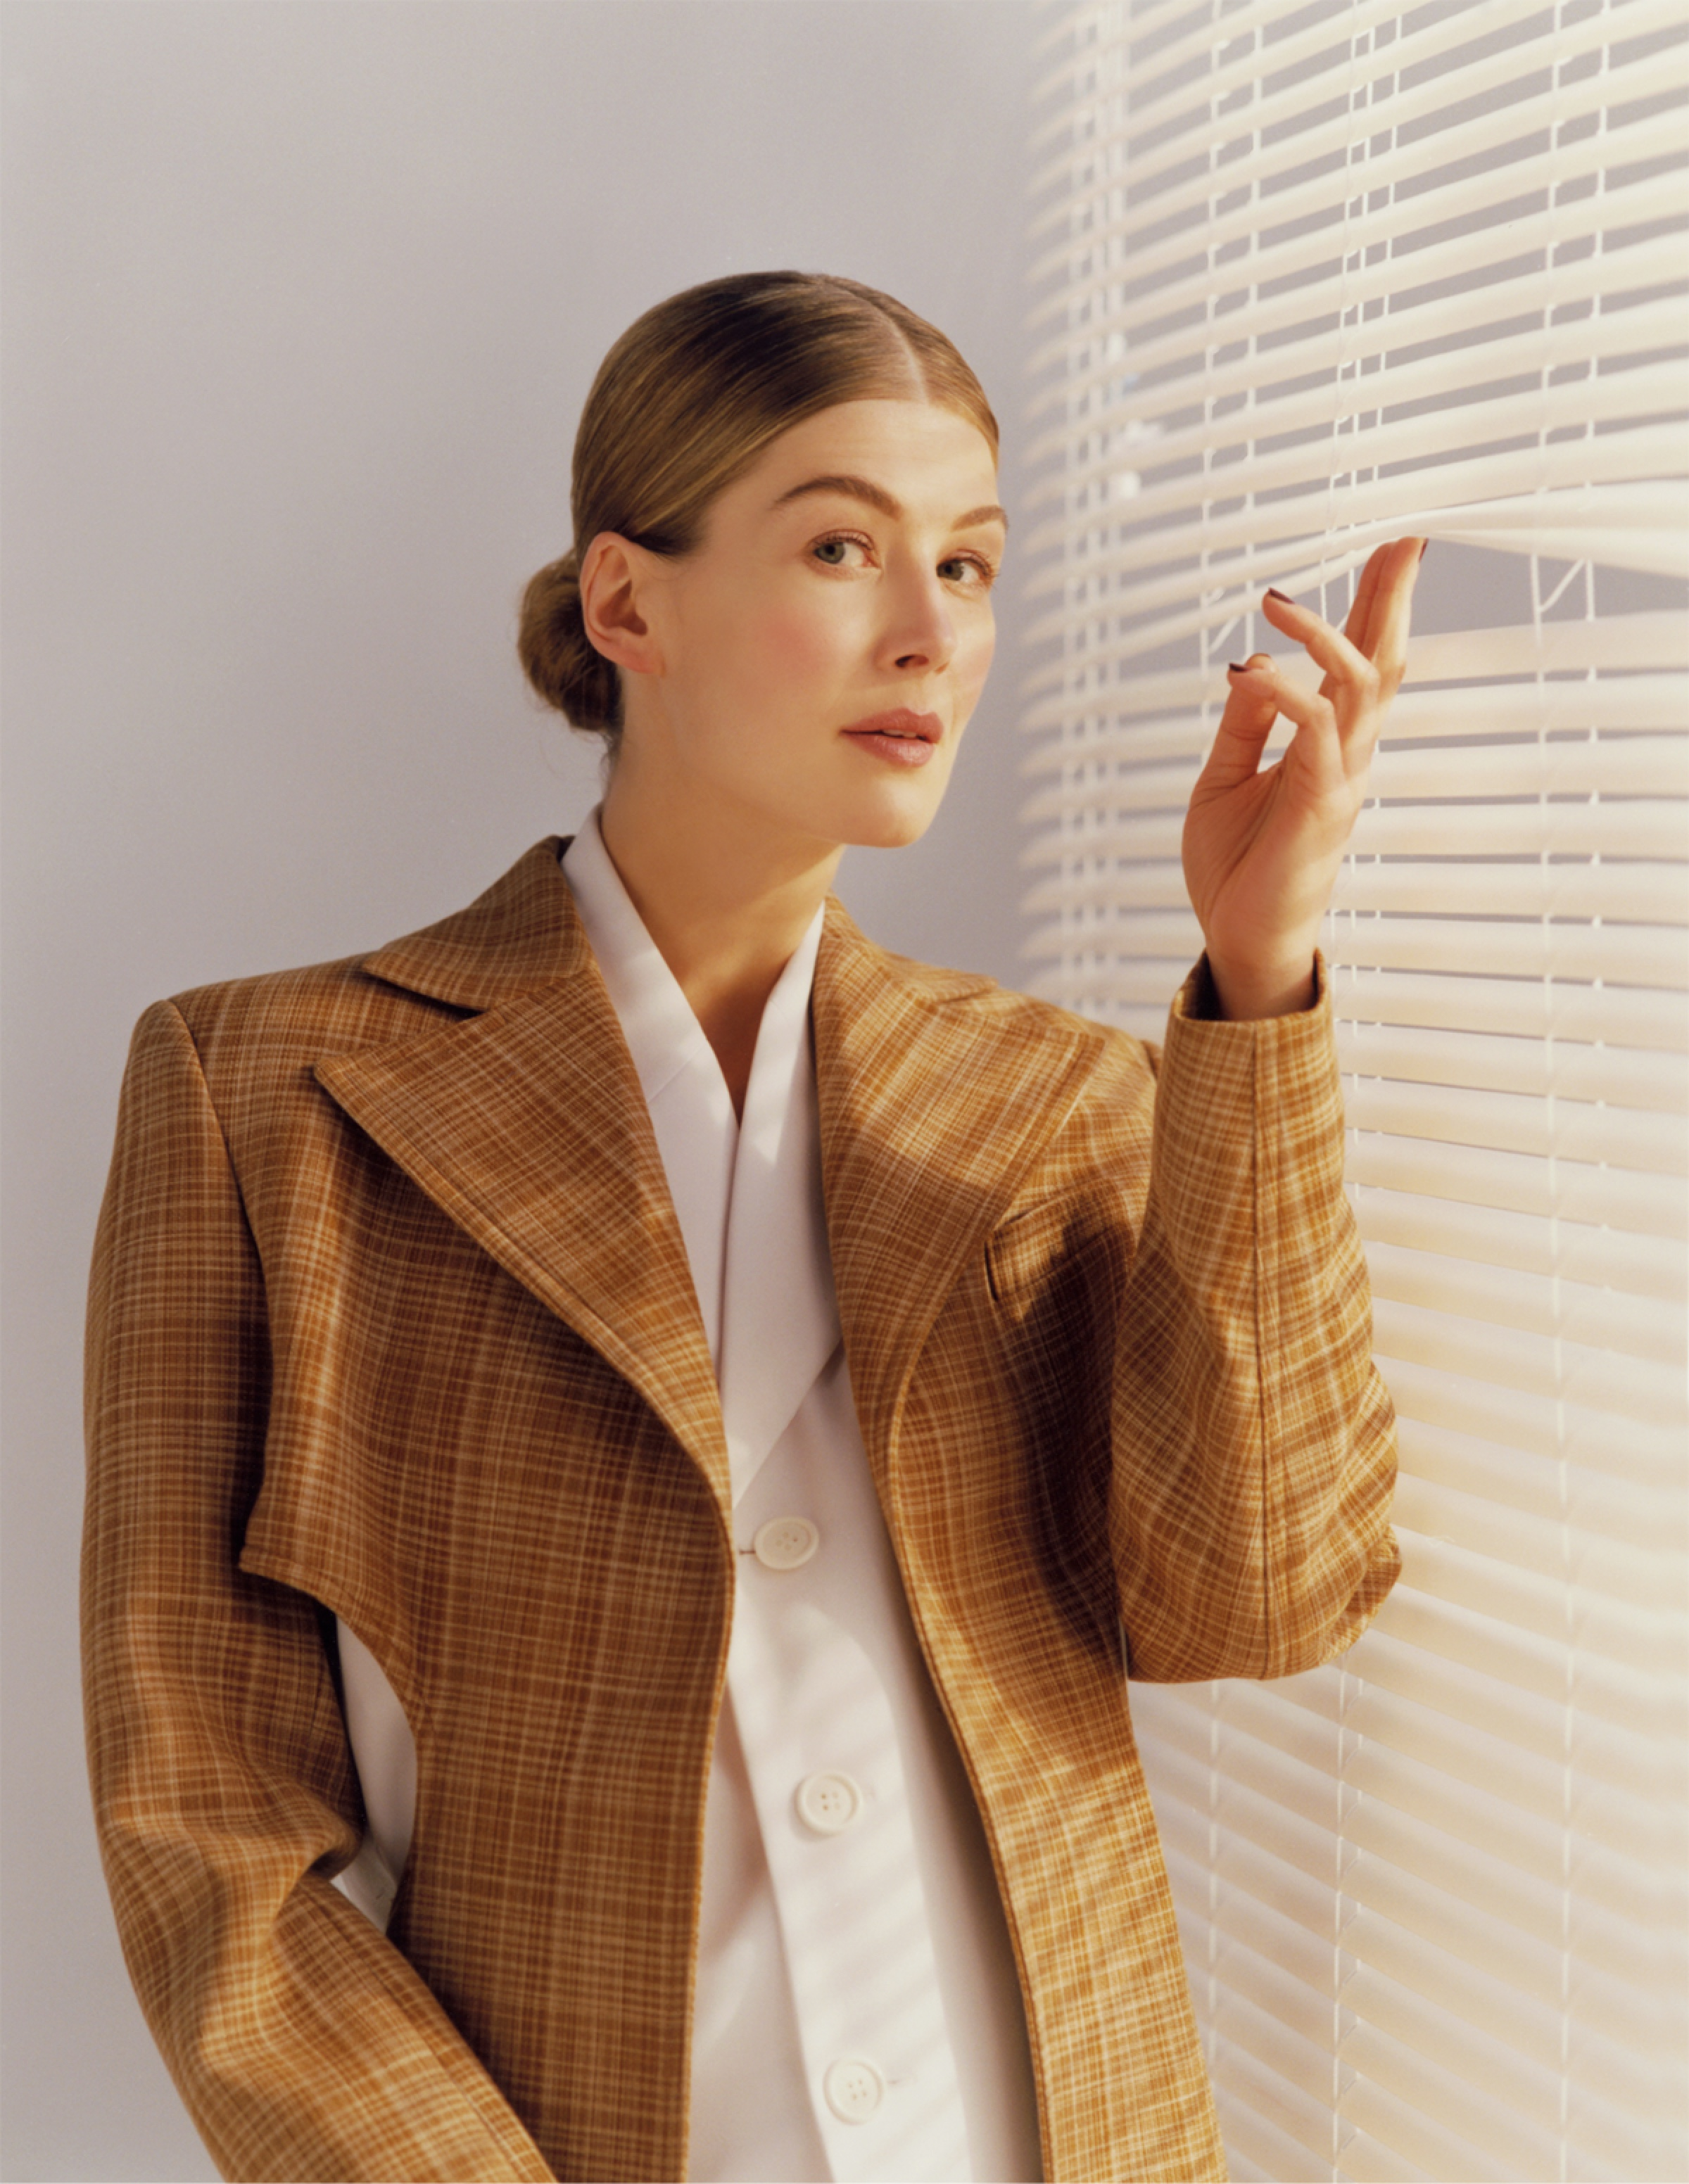 Rosamund Pike poses in a checkered jacket and white shirt. She looks askance at the camera as she uses two fingers to lift up a panel on a set of venetian blinds.